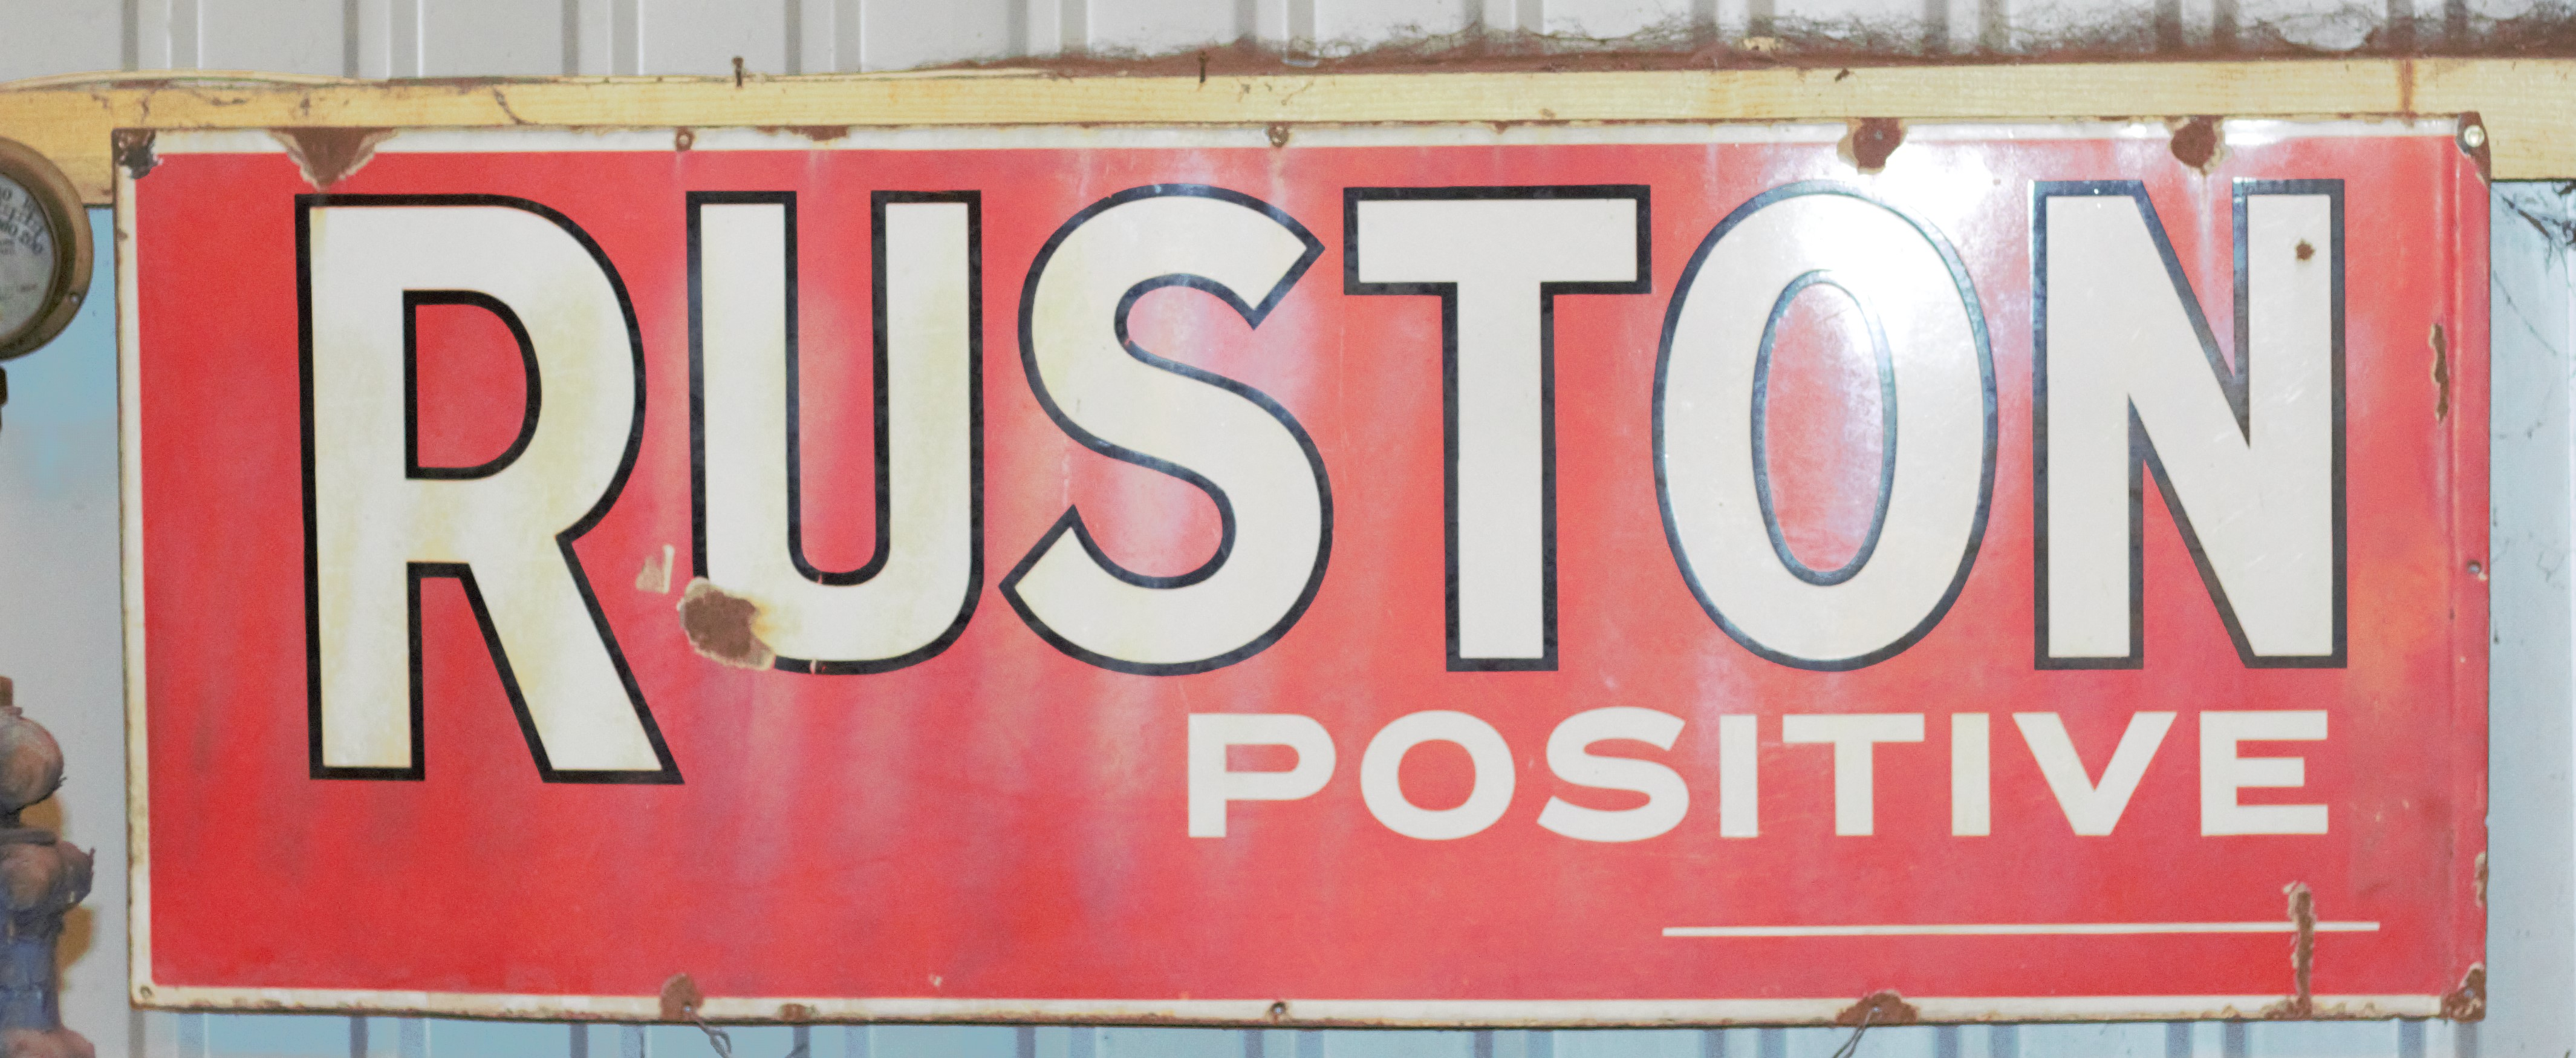 Vintage enamel advertising sign 'Ruston Positive' (possibly Ruston Bucyrus or Ruston Hornsby